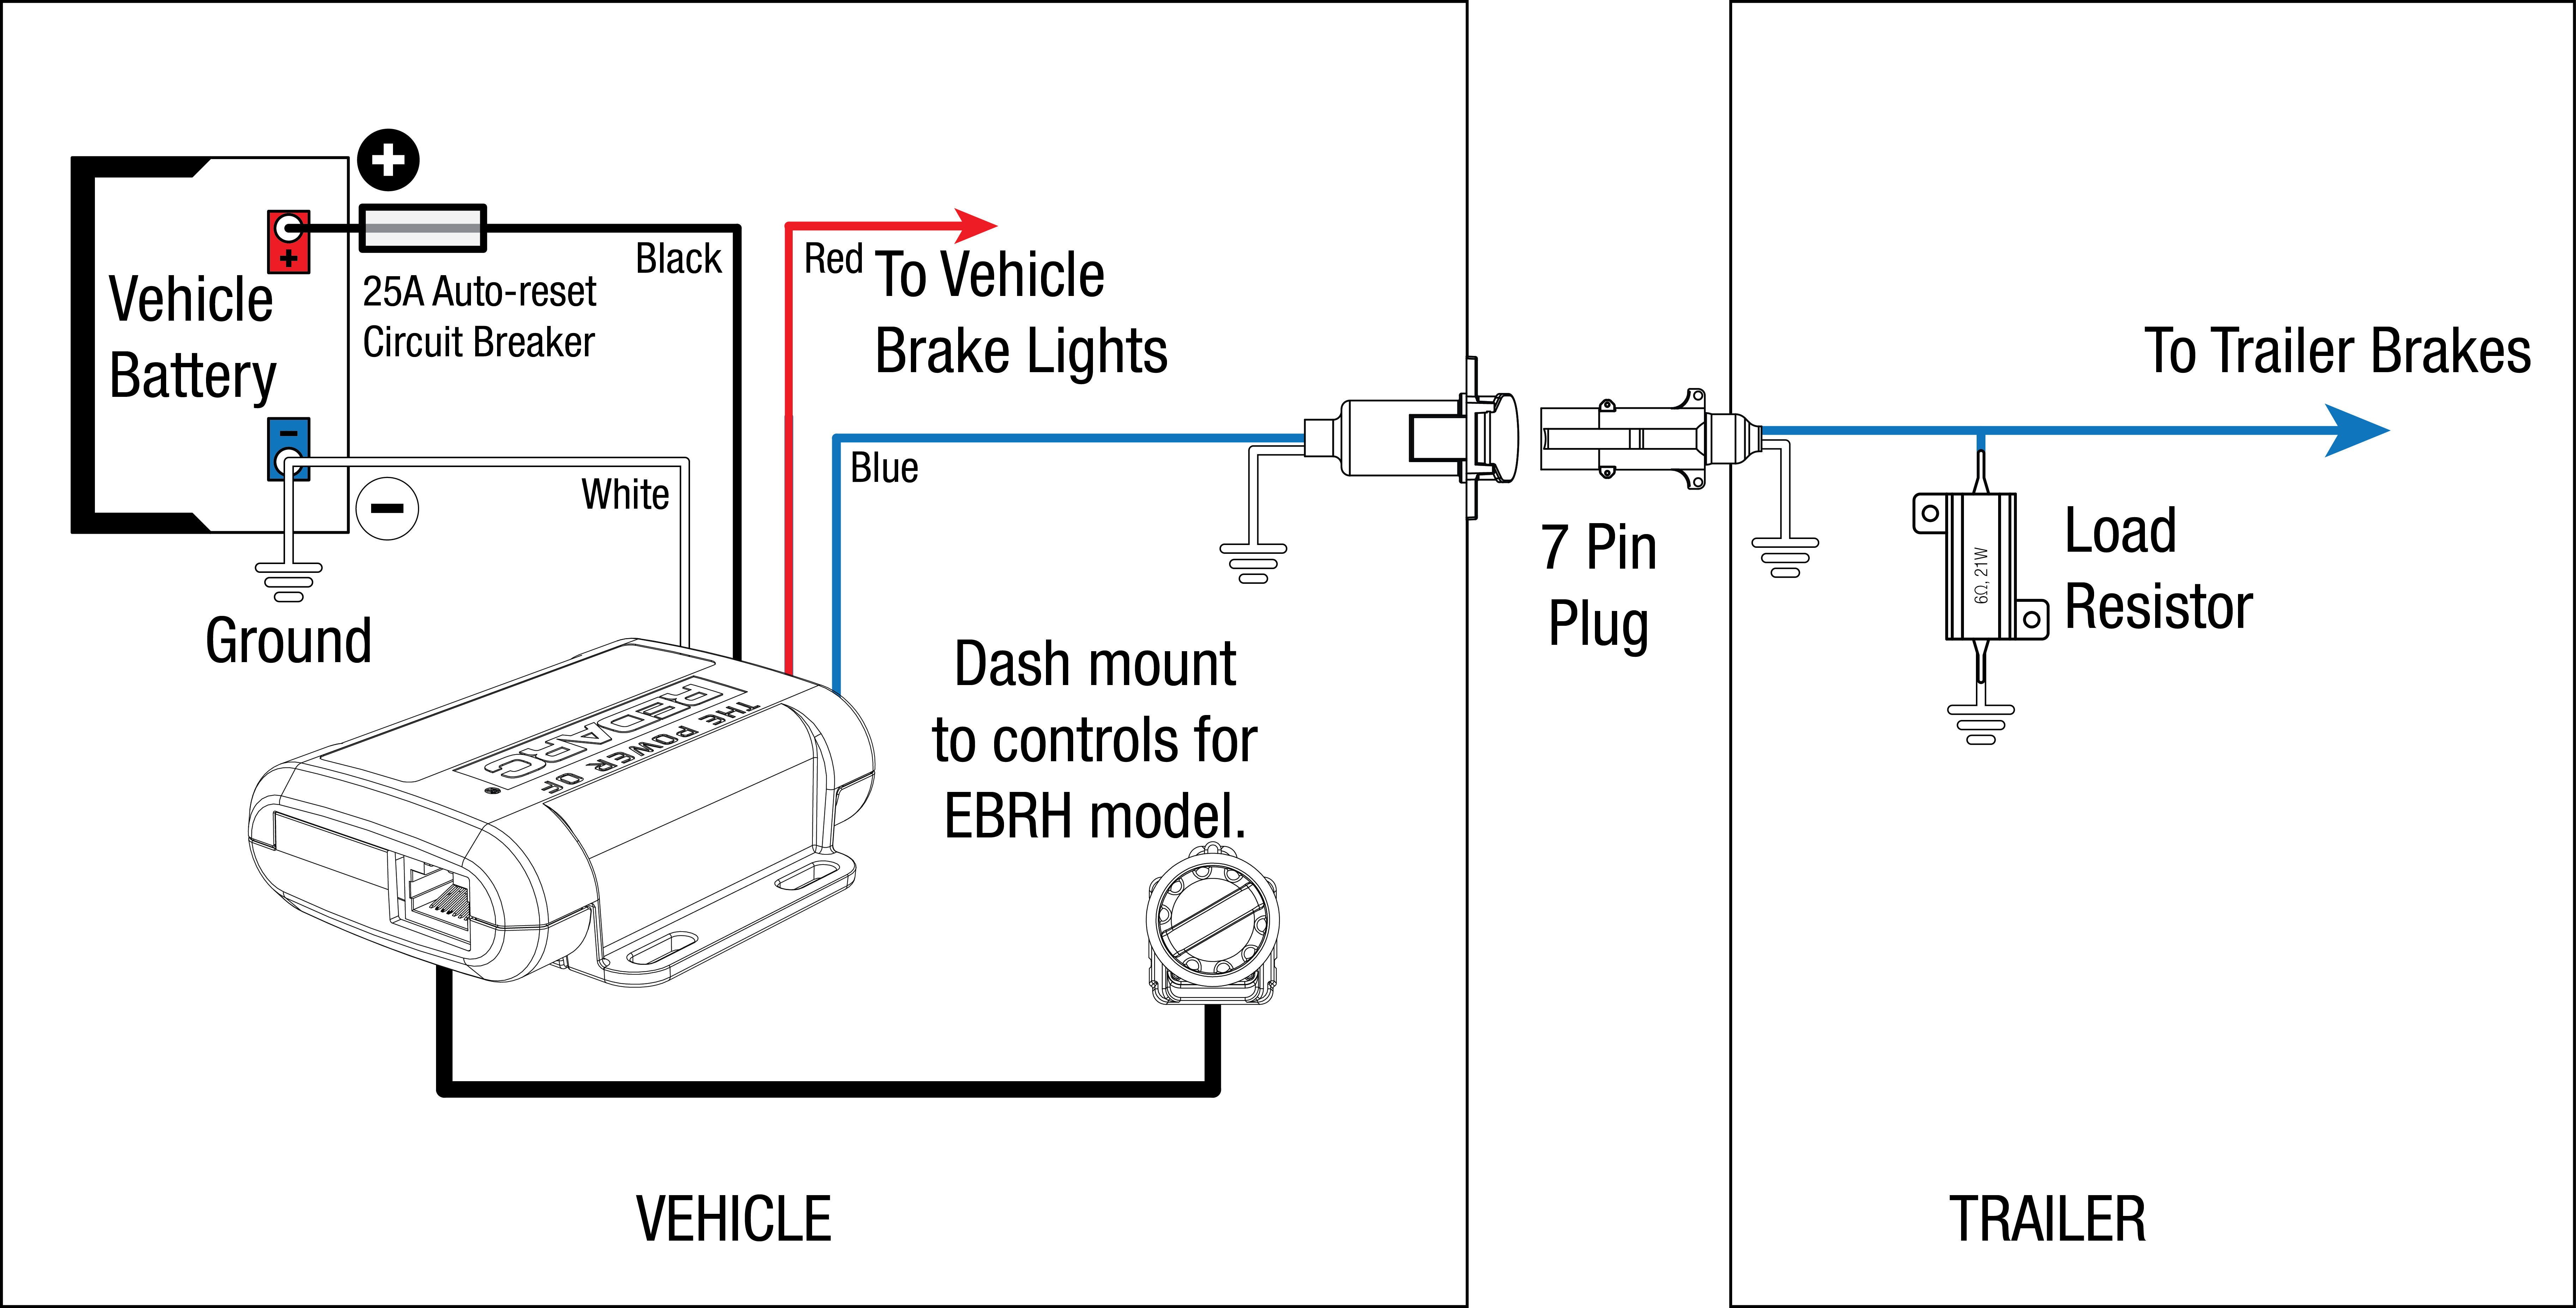 Tow-Pro Electric/hydraulic Braking Systems | Redarc Electronics - Wiring Diagram For Trailer Plug With Electric Brakes